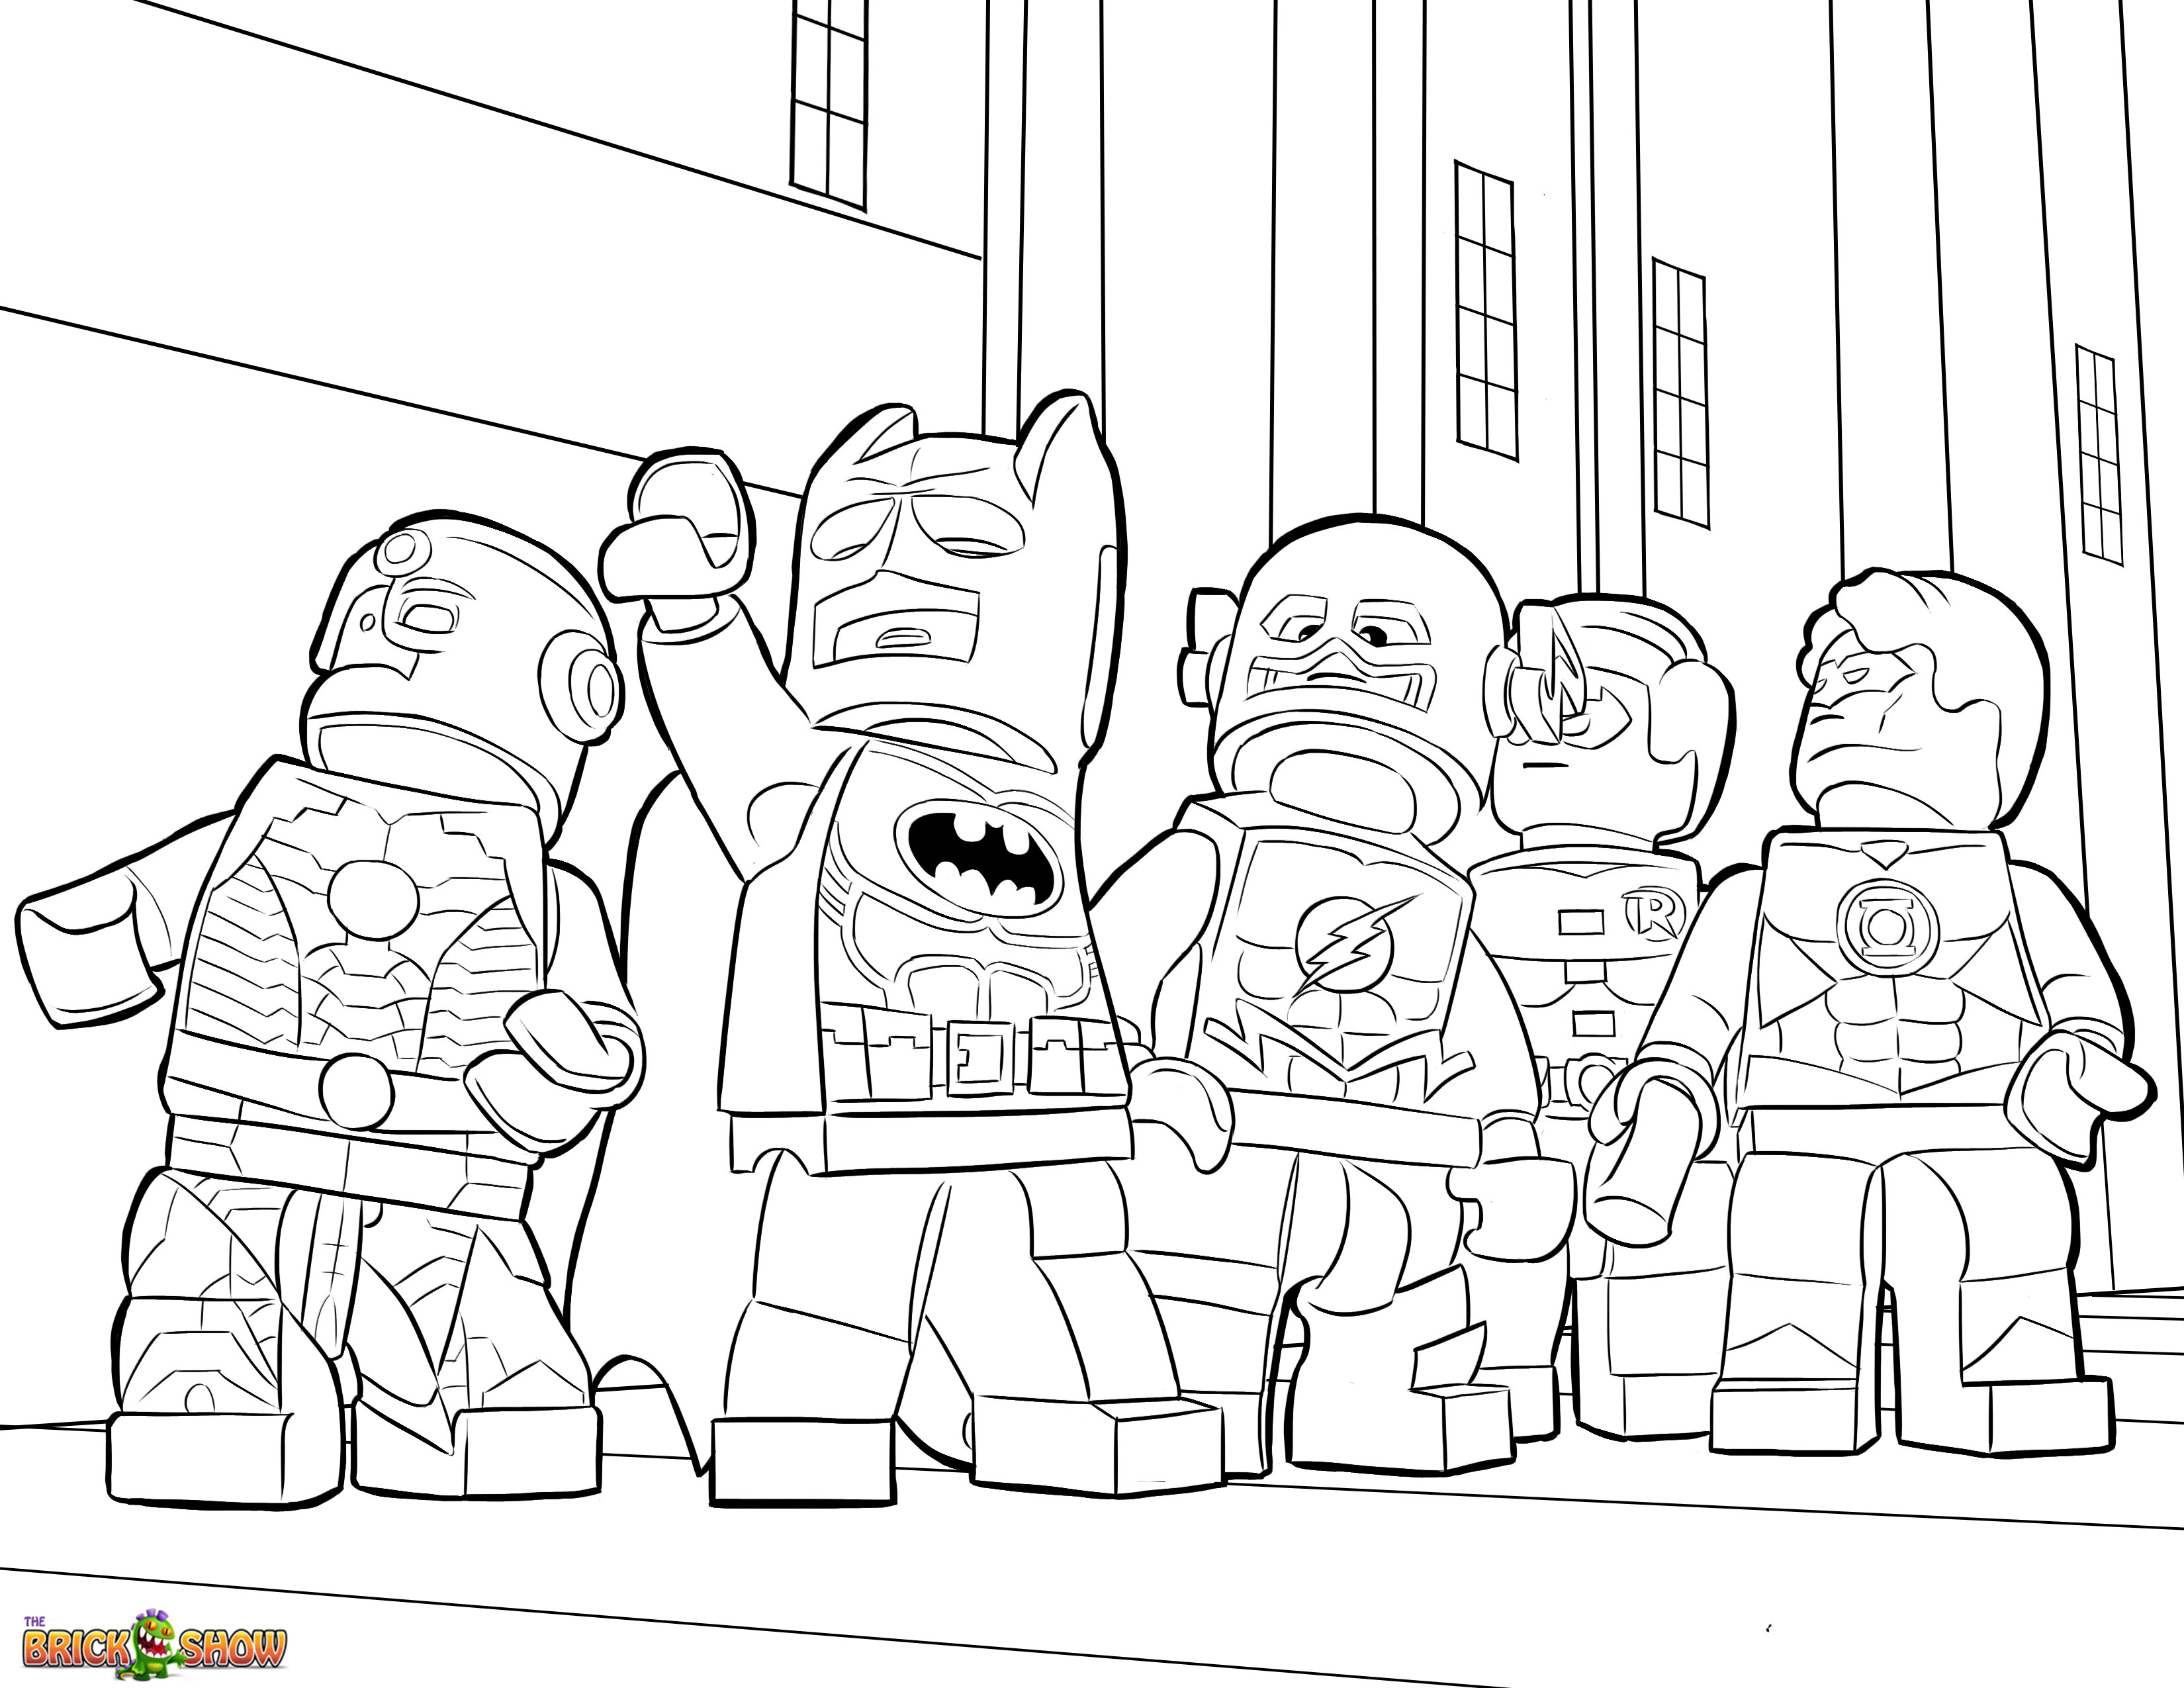 Lego superman coloring pages to download and print for free